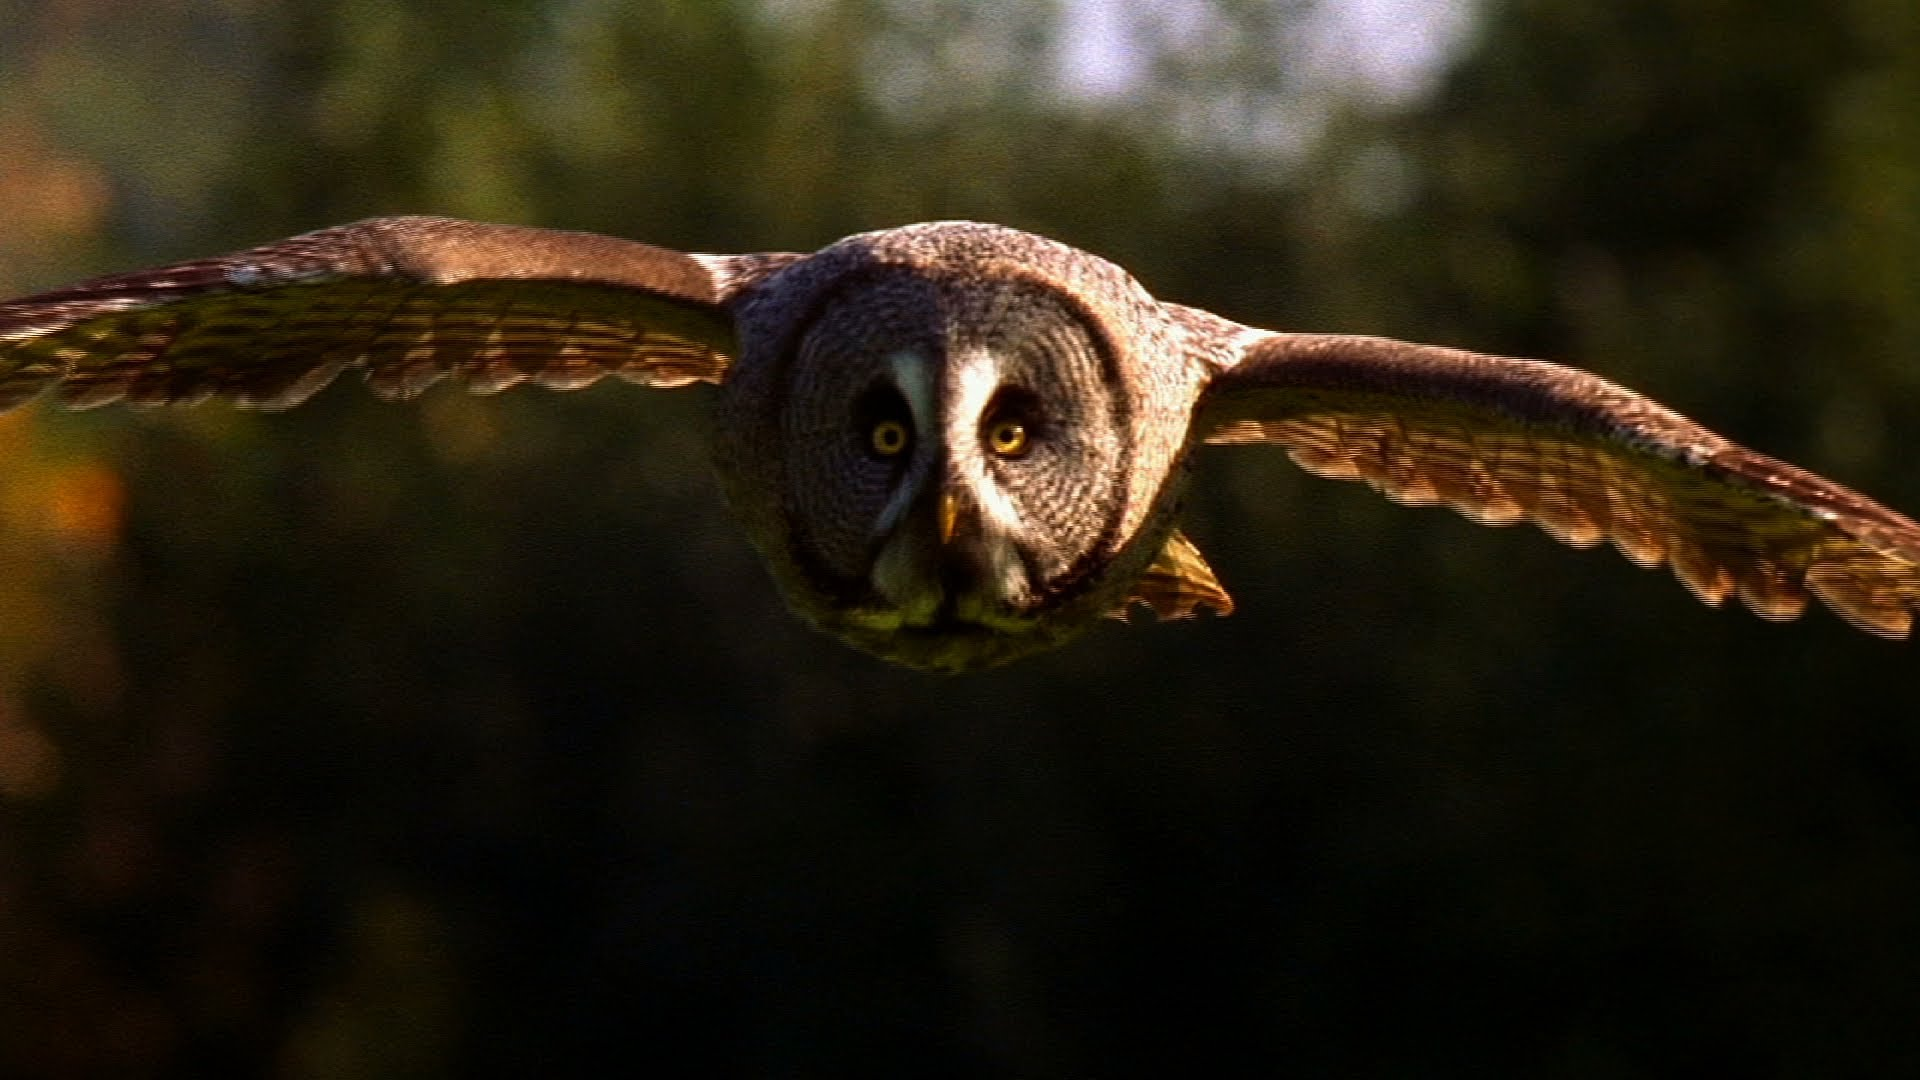 Owl - Hunting Technique